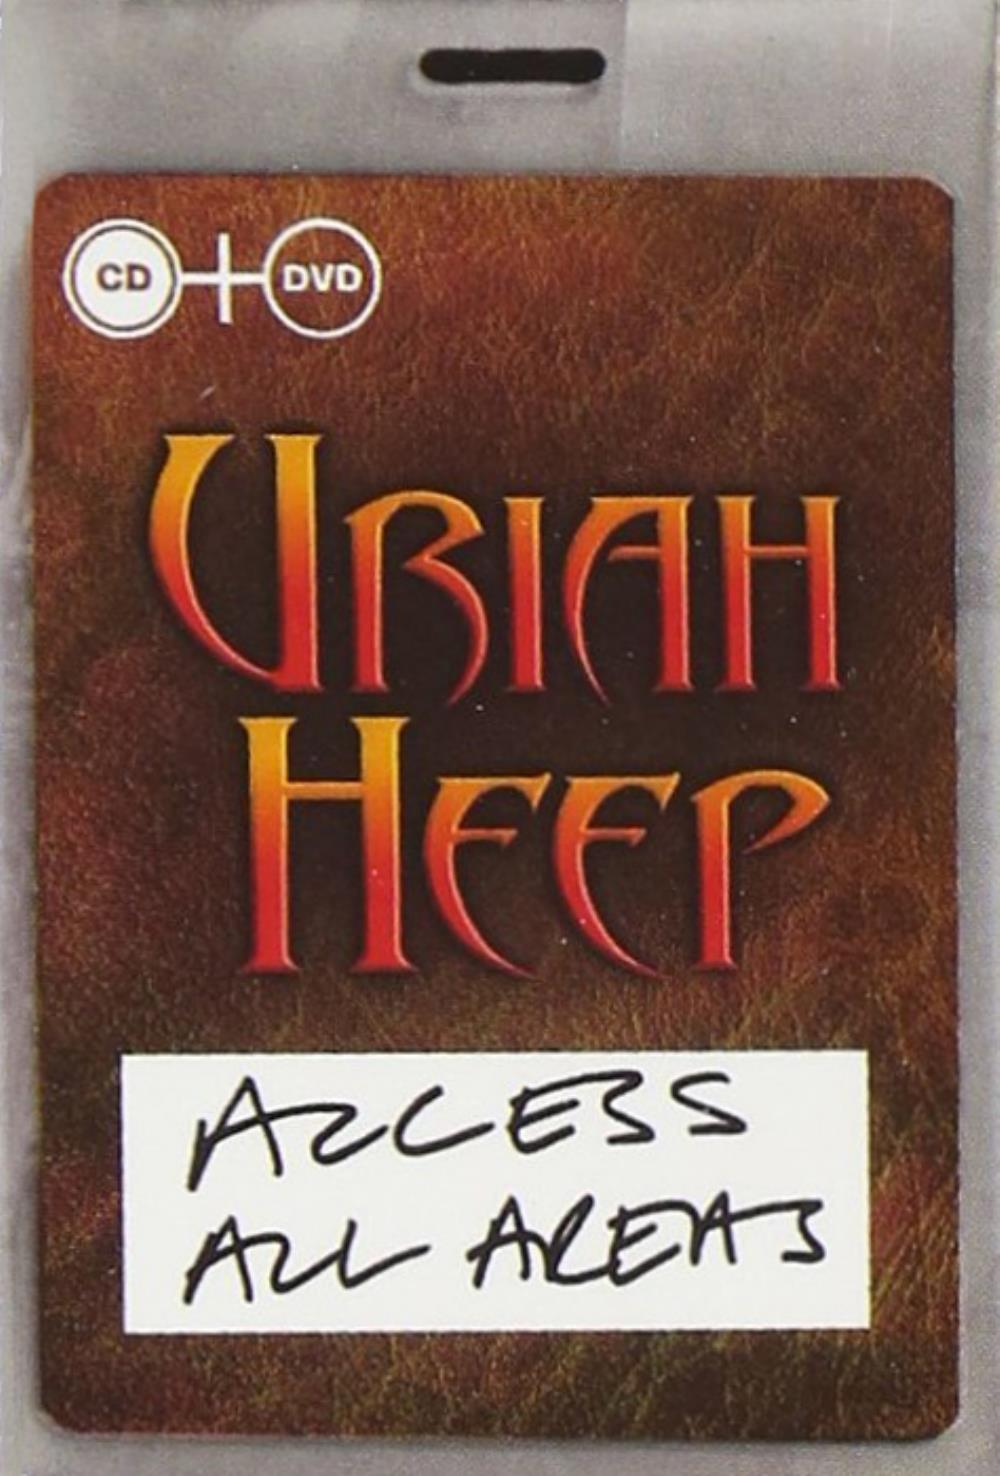 Uriah Heep - Access All Areas (20th Anniversary Concert) DVD (album) cover